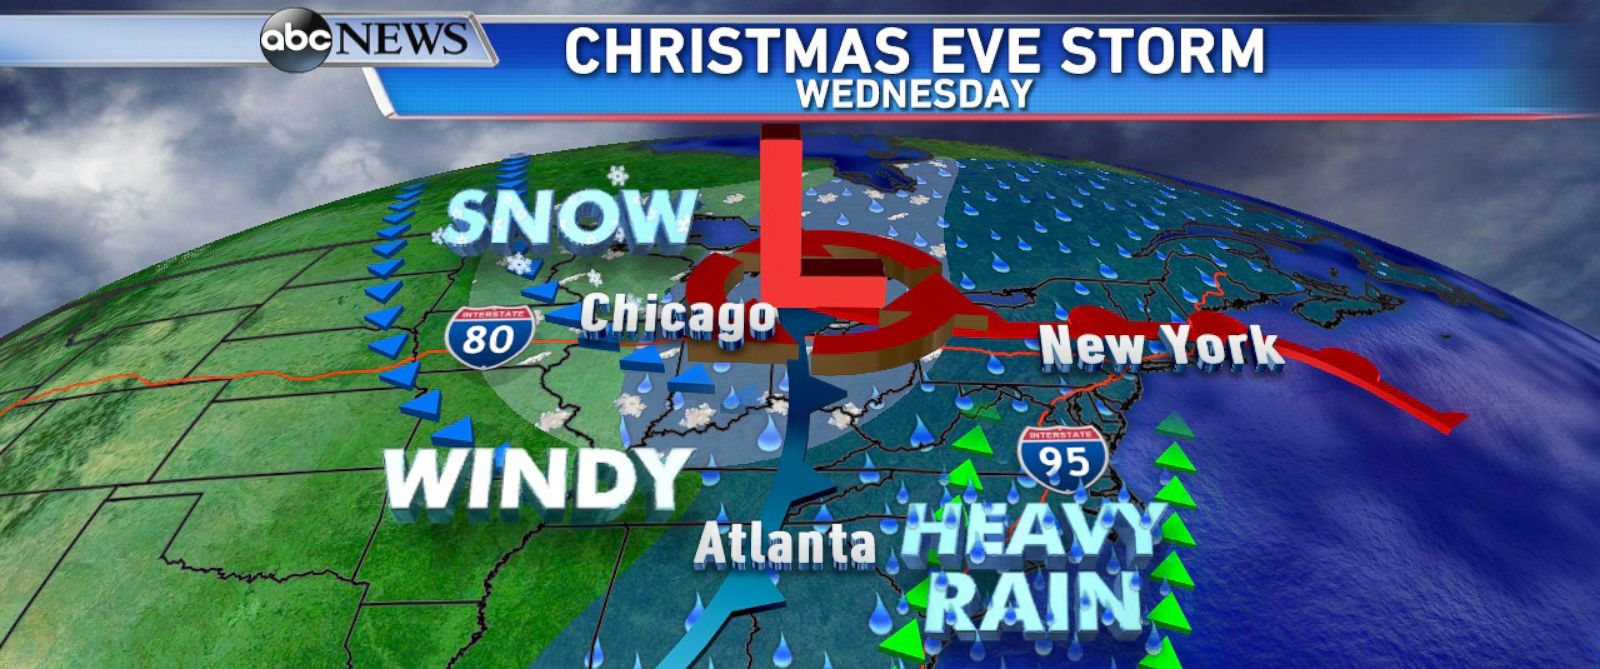 Christmas Forecast Stormy Week To Bring Severe Weather And Lots - Usa extreme weather map